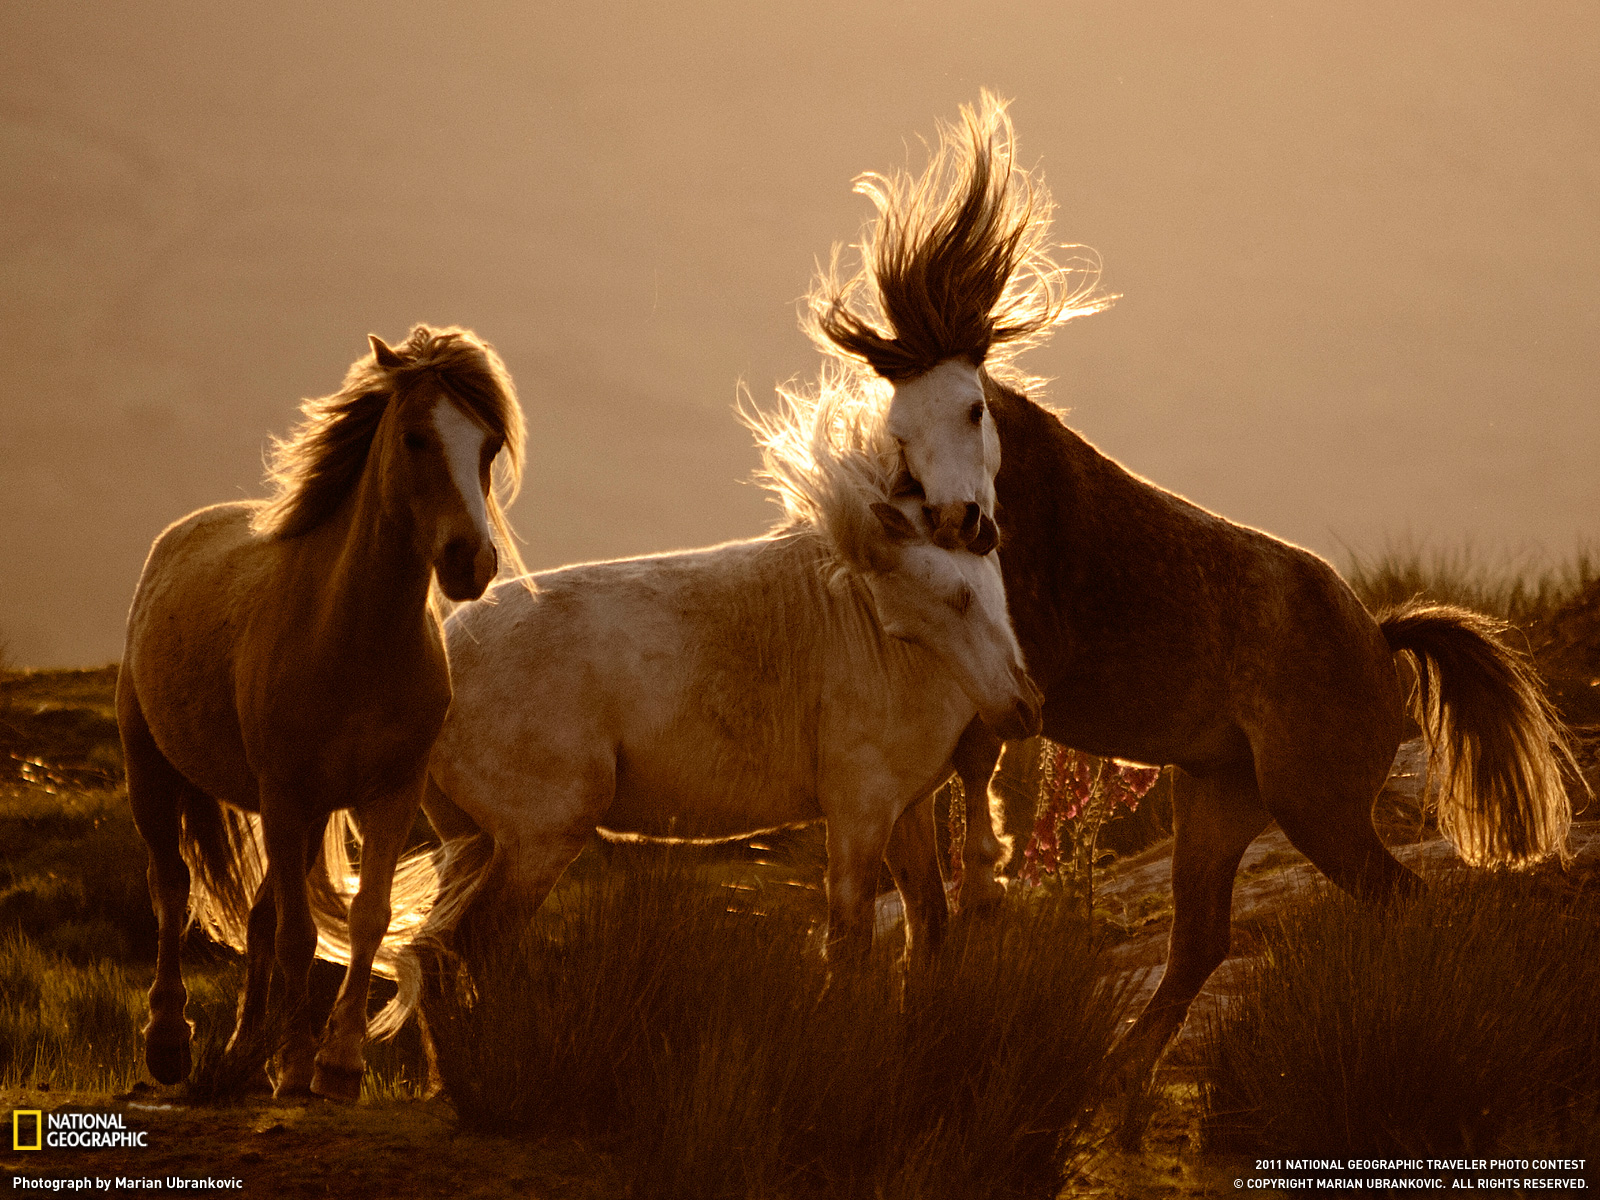 Beautiful   Wallpaper Horse National Geographic - National+Geographic+-+Animal+Photos+-+July+2011+-+Horses%252C+Wales+001  Picture_206632.jpg